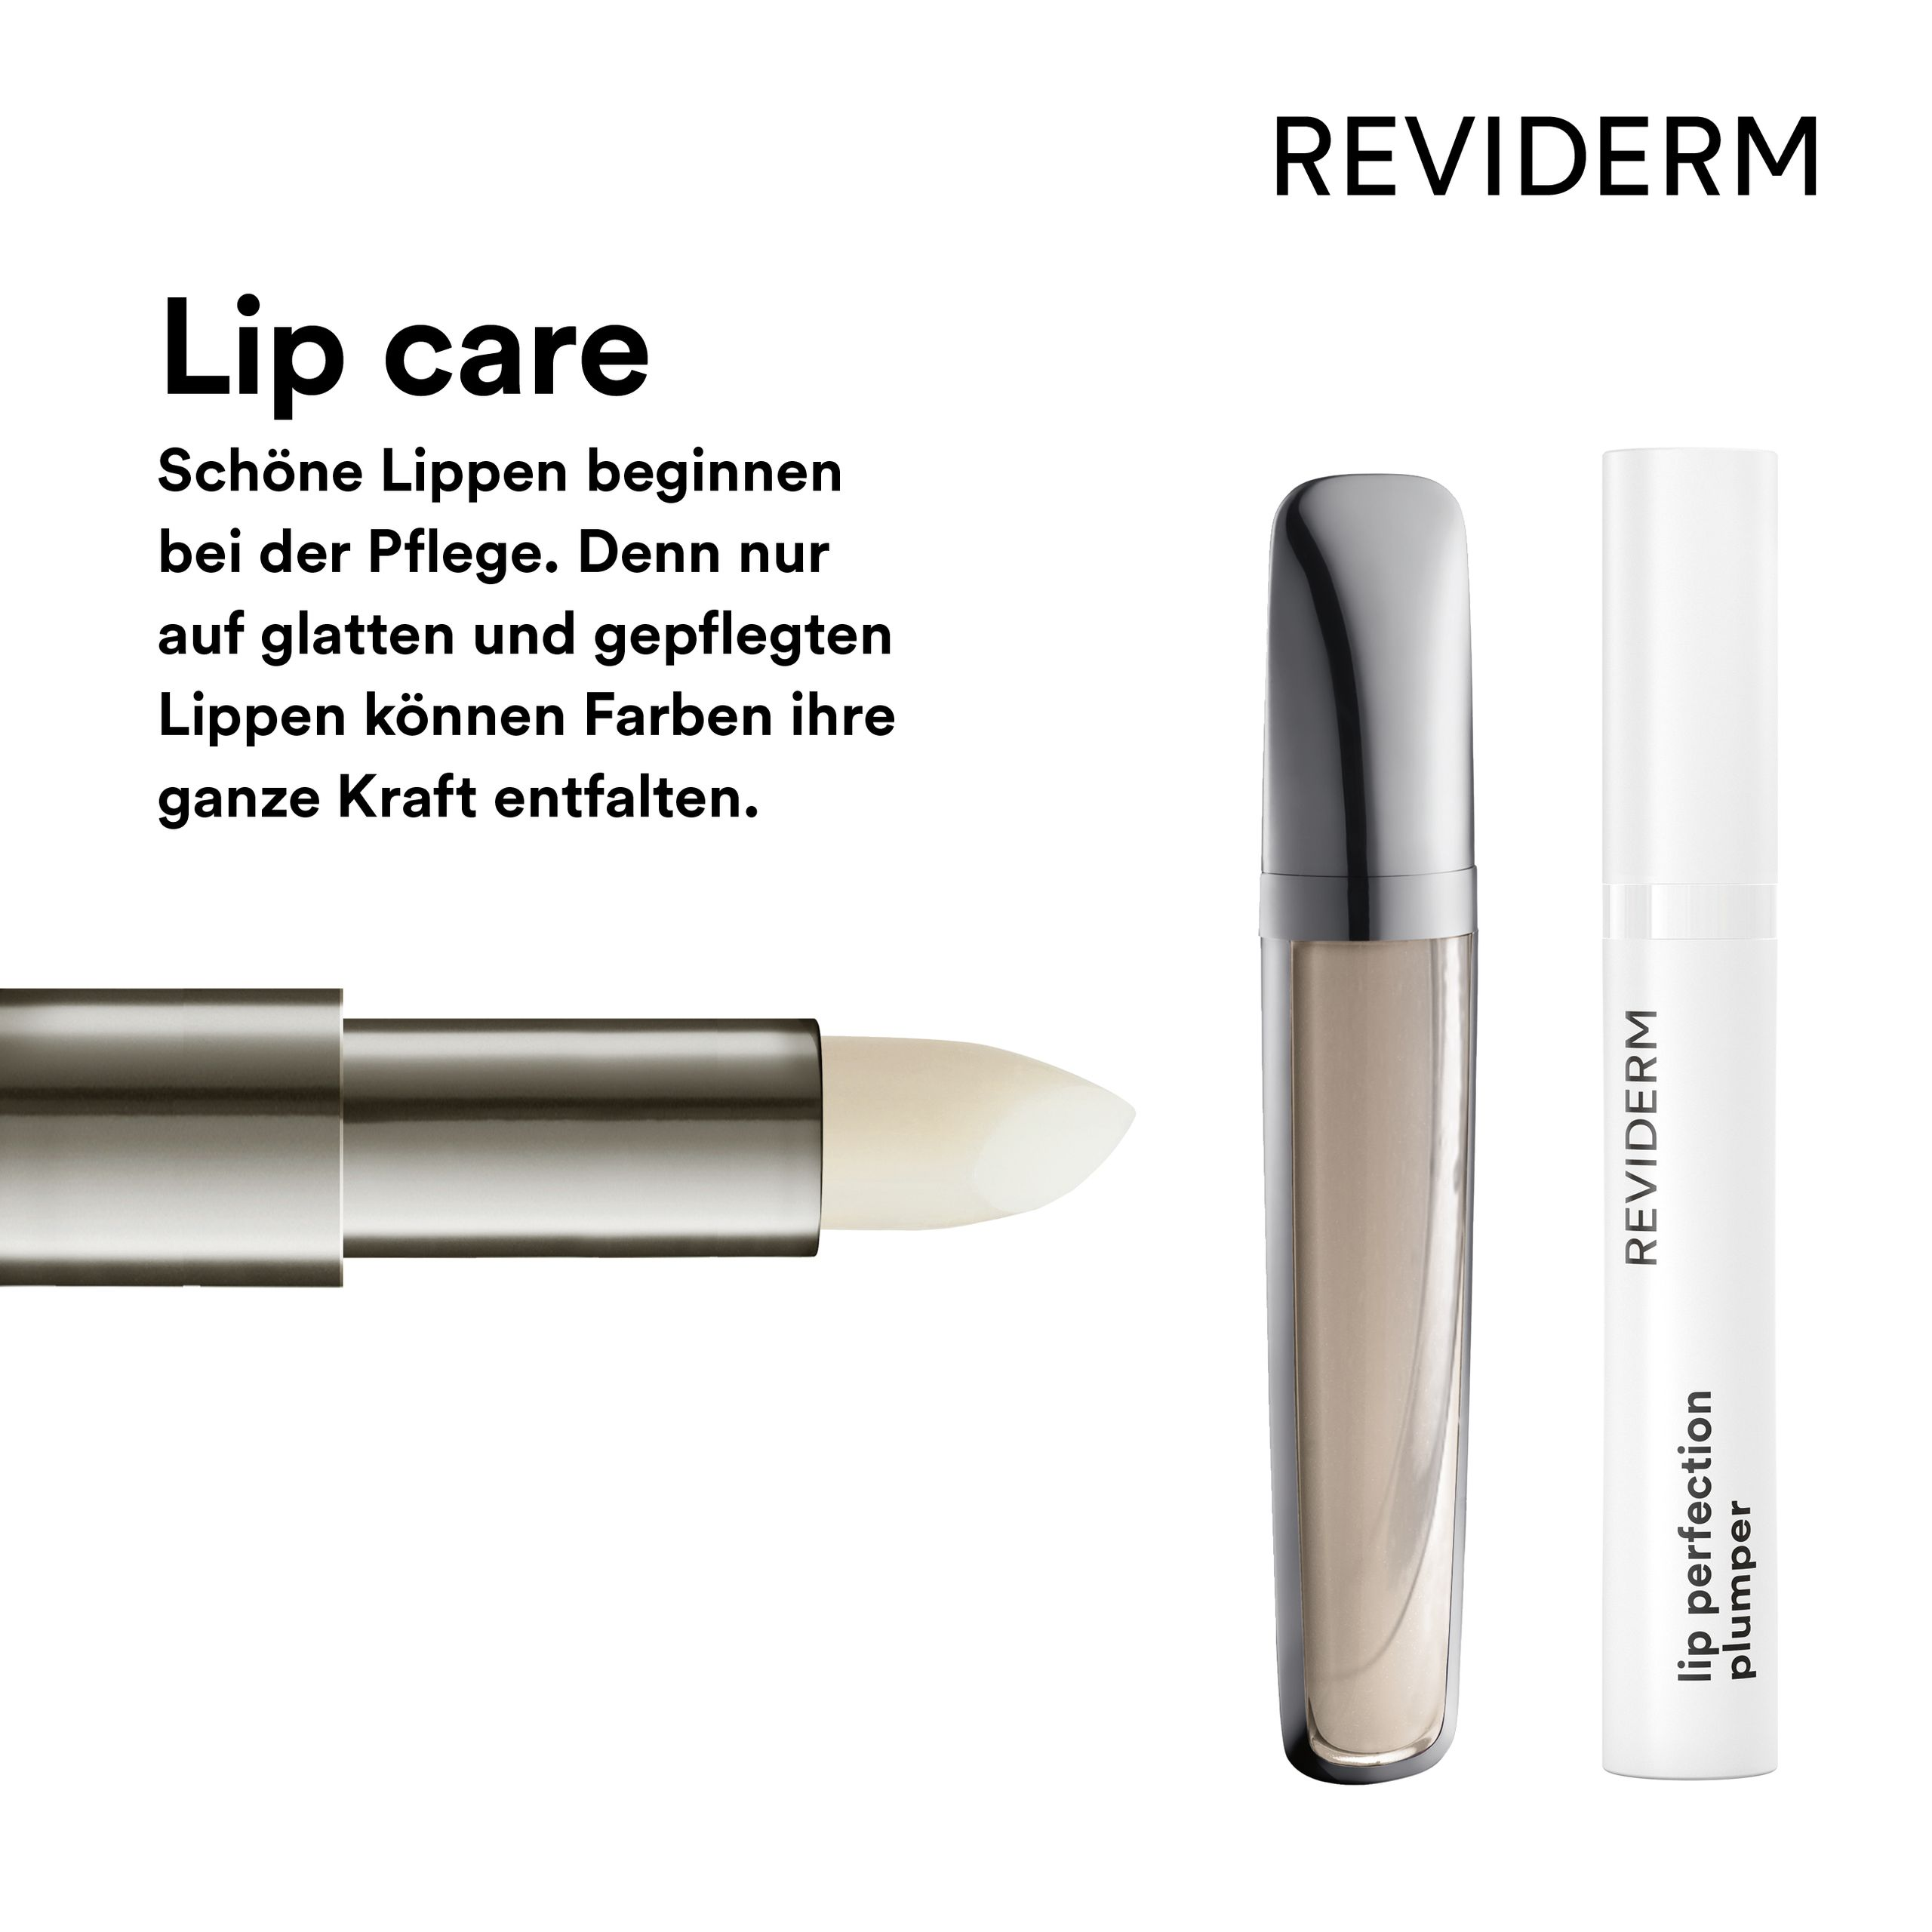 Lip care Reviderm